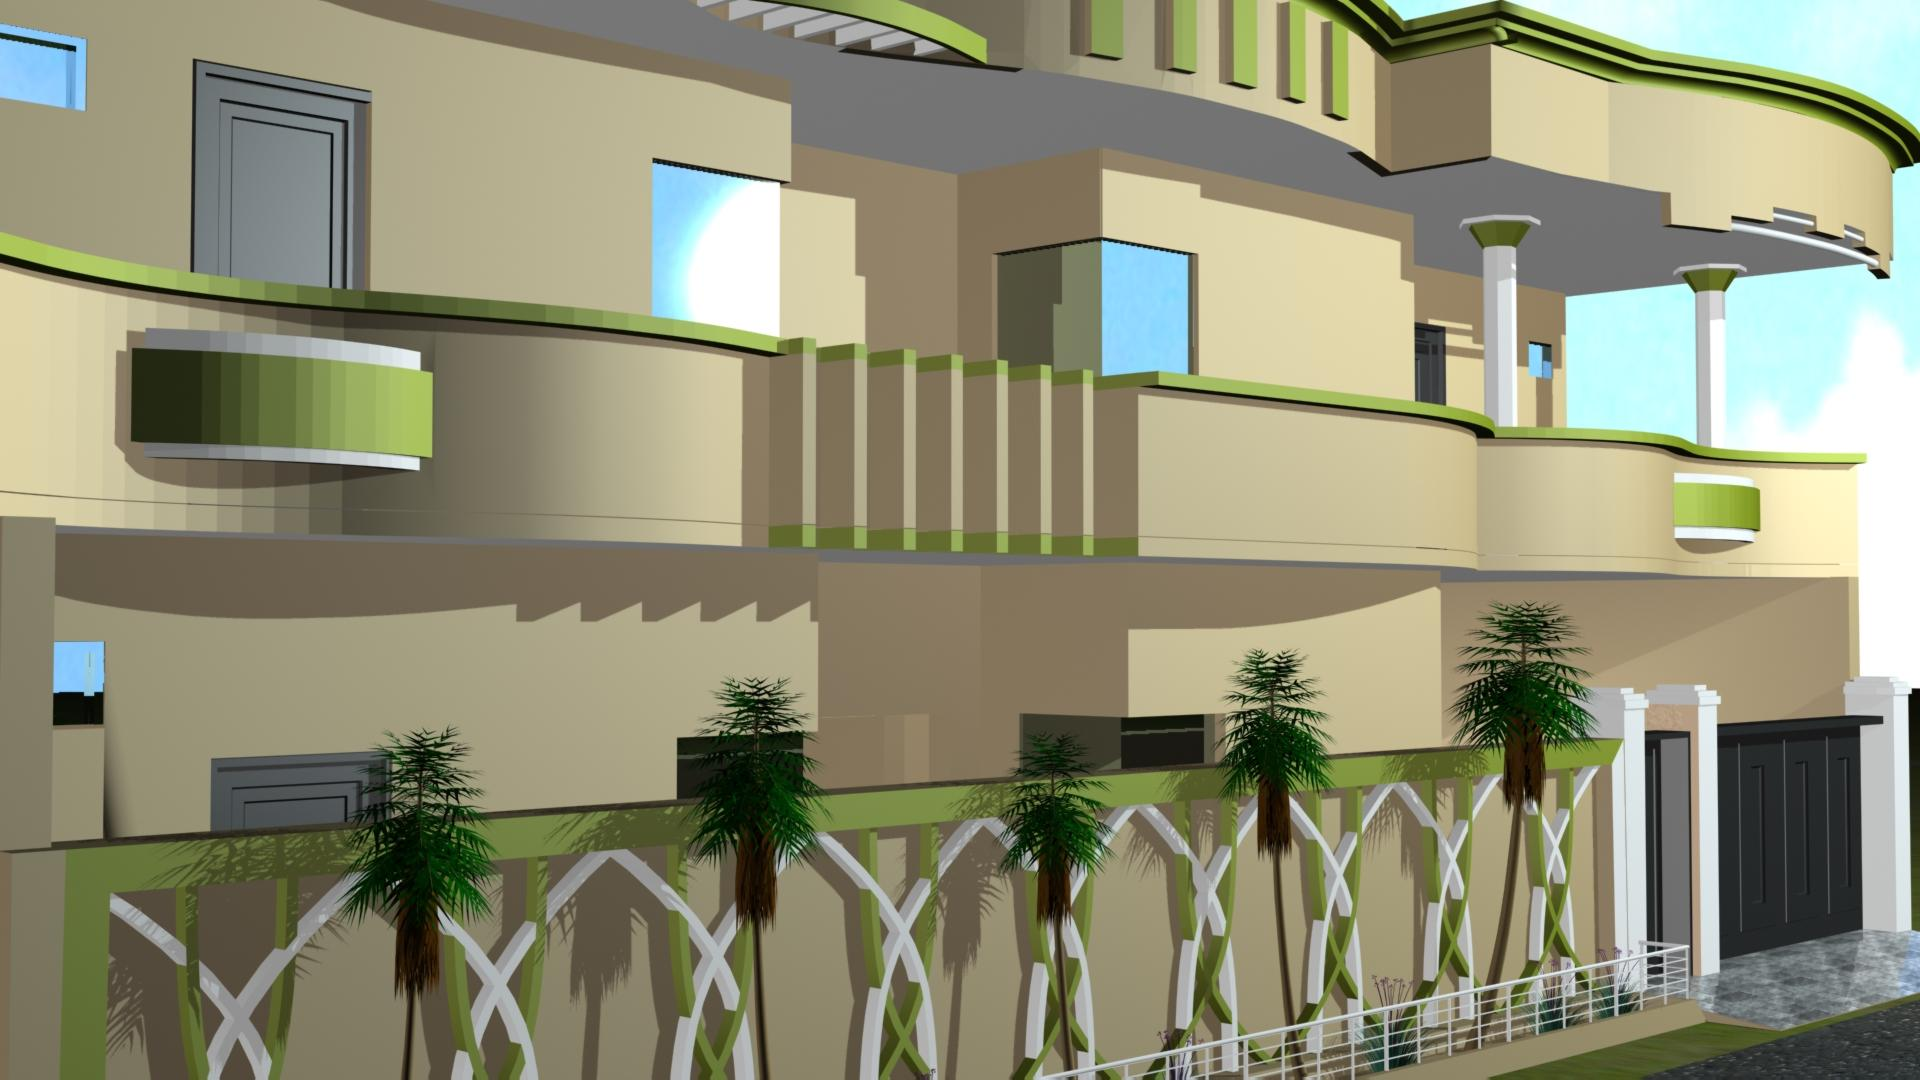 MY WORK IN 3DMAX